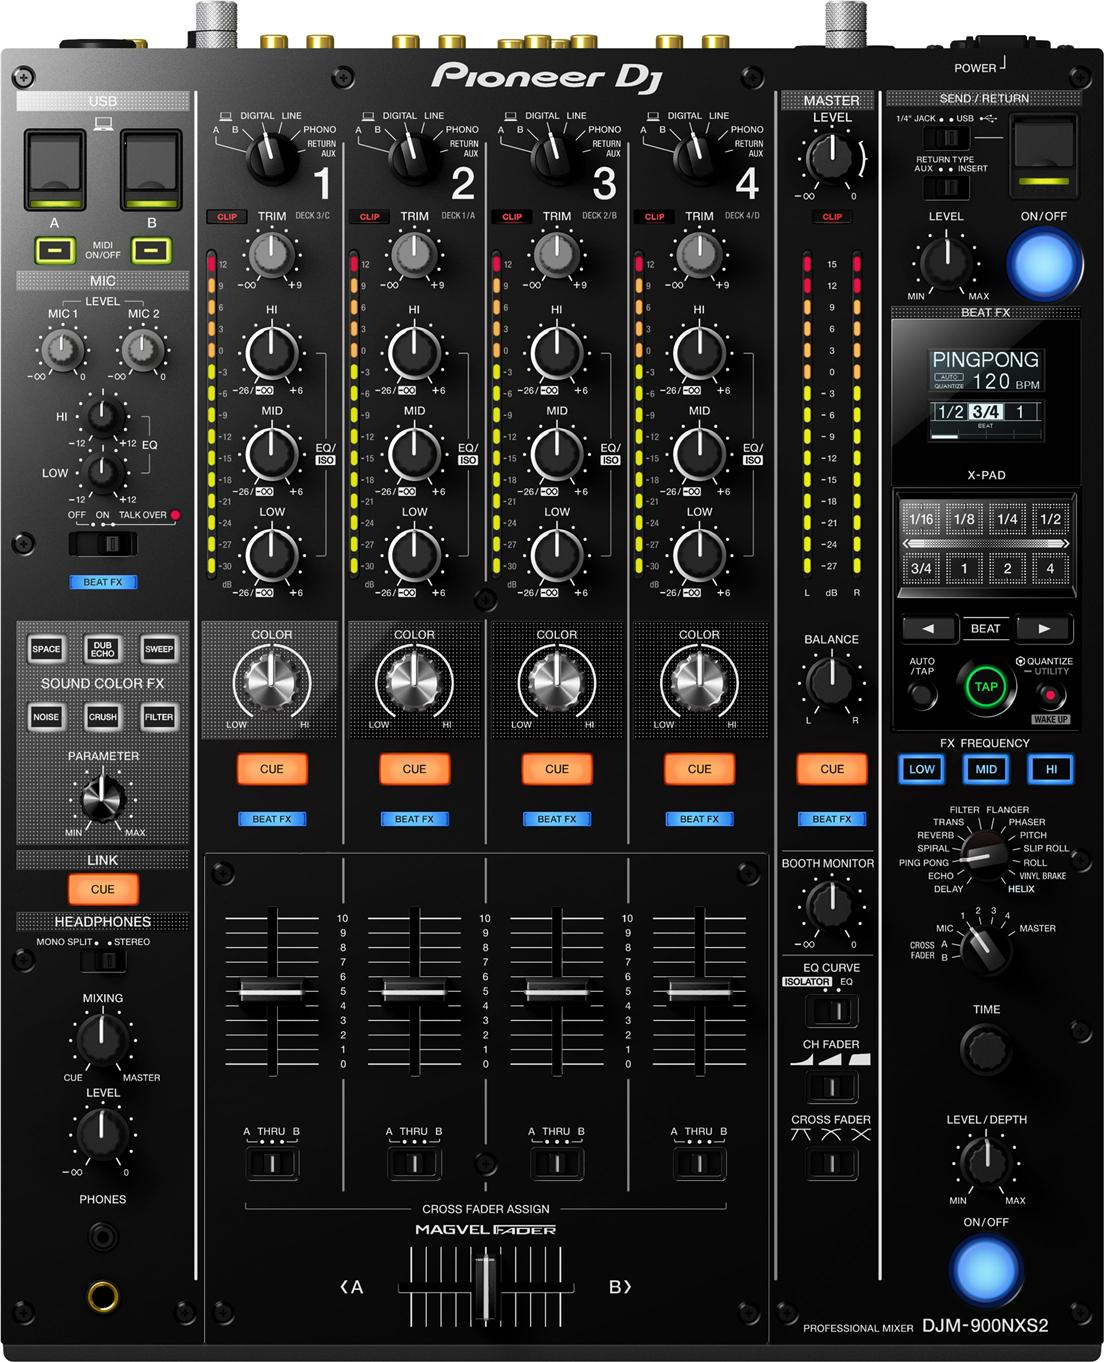 PIONEER DJM-900NXS2 - 4-Channel Digital Pro-DJ Mixer - FREE SHIPPING